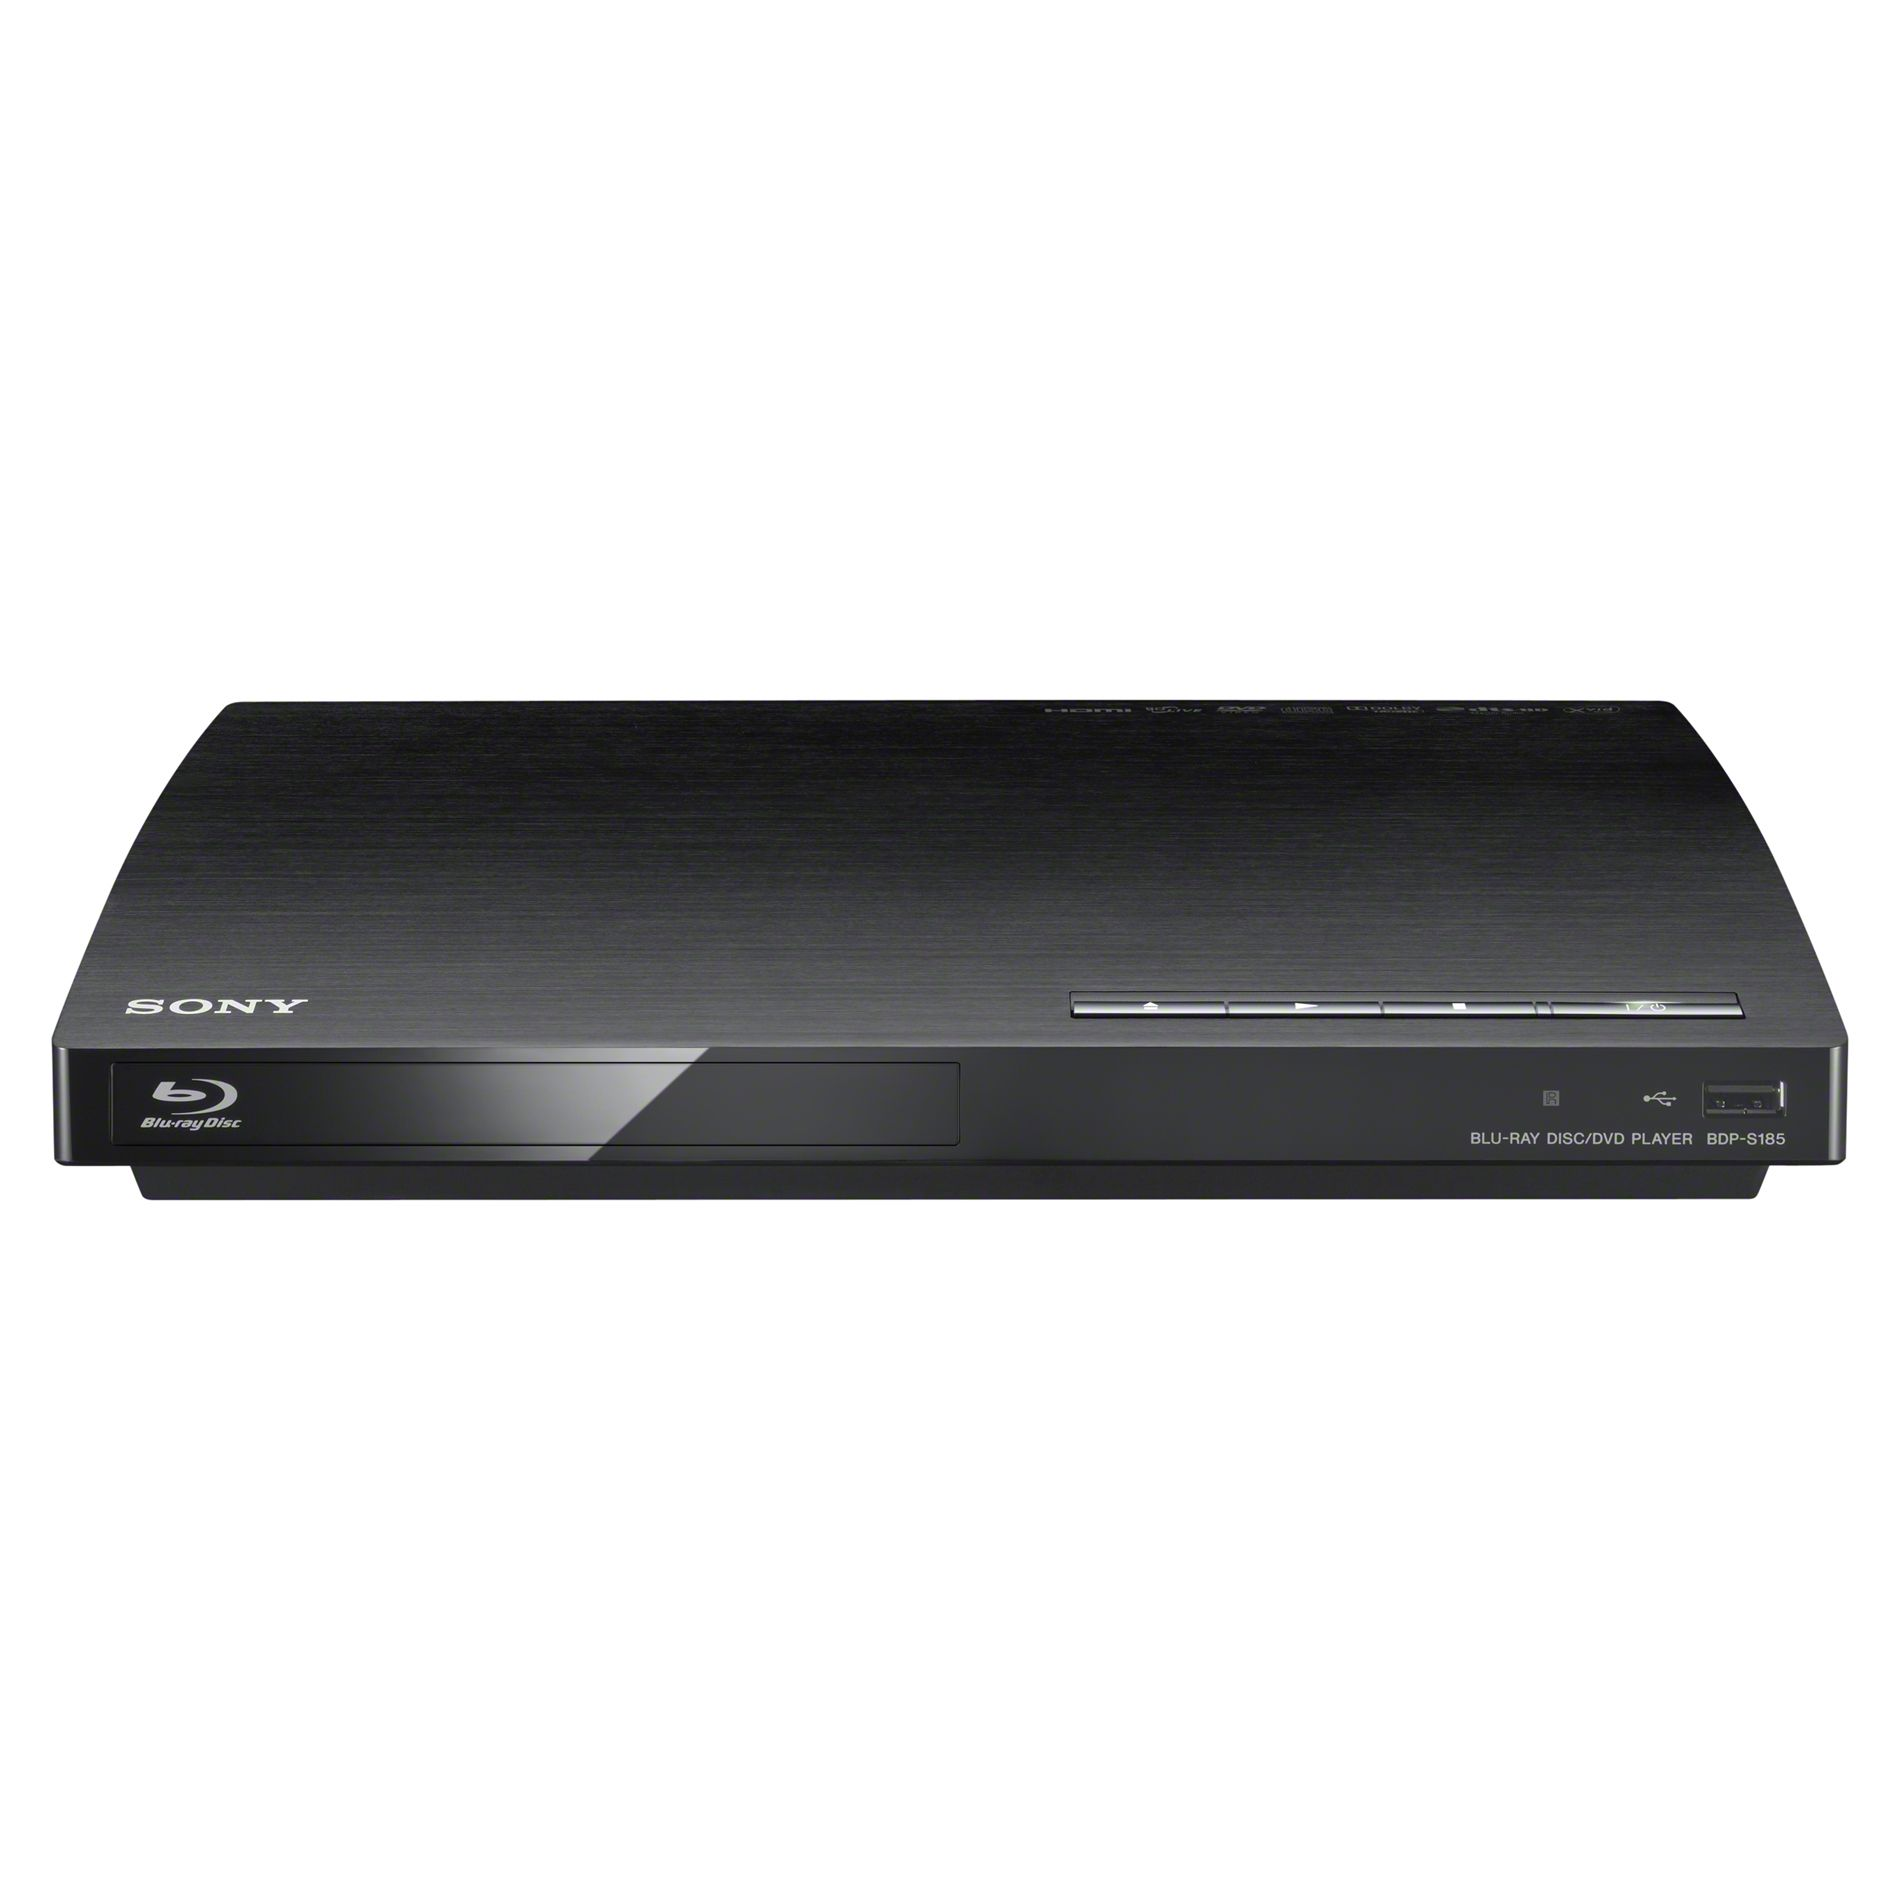 Sony Blu-Ray Disc™ Player w/ Internet Streaming - BDPS185